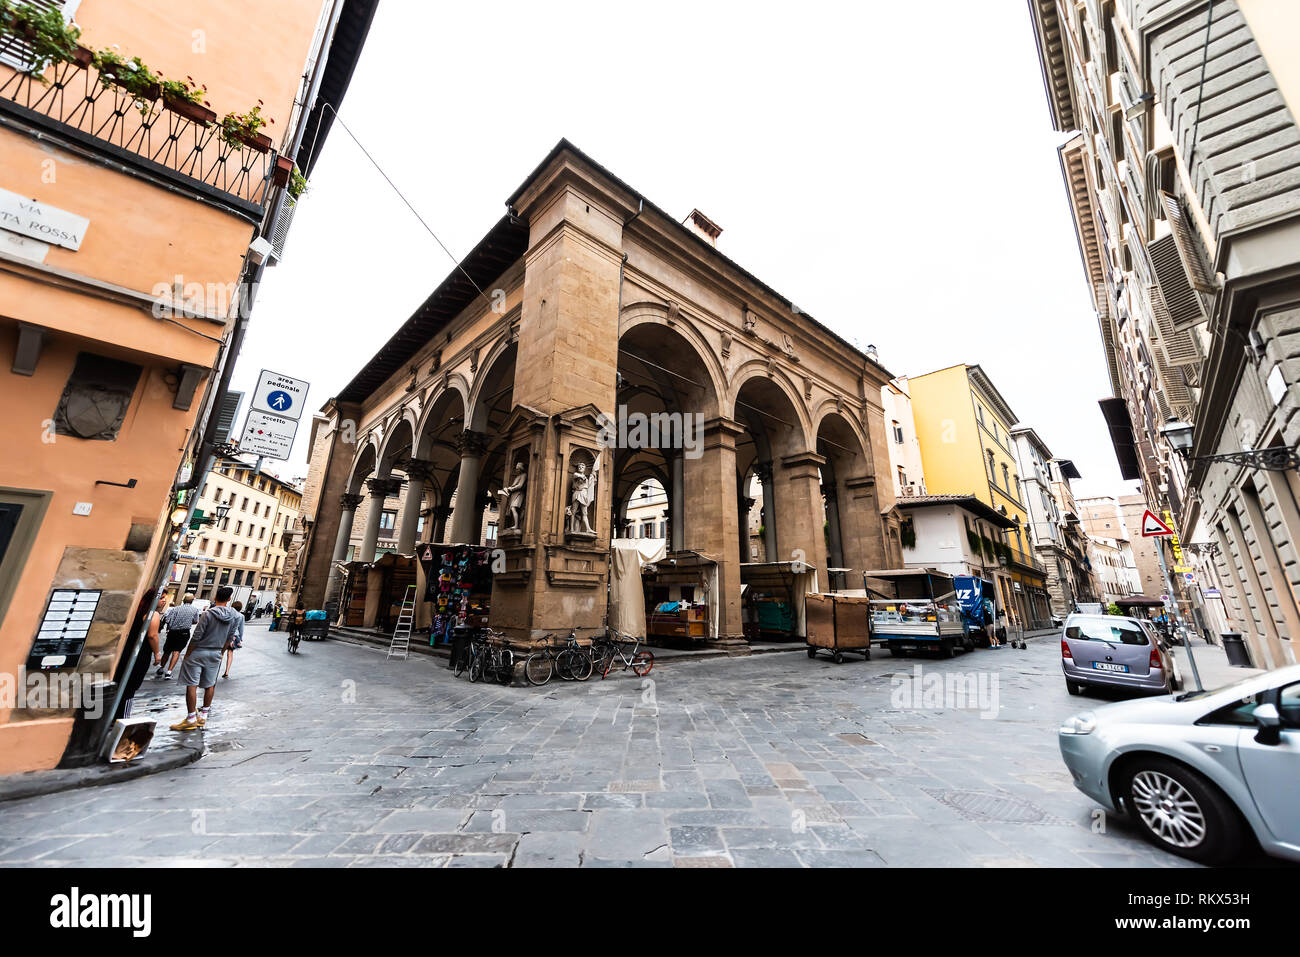 Florence, Italy - August 31, 2018: Building facade of historic Mercato del Porcellino in Firenze, Italian city architecture in morning - Stock Image